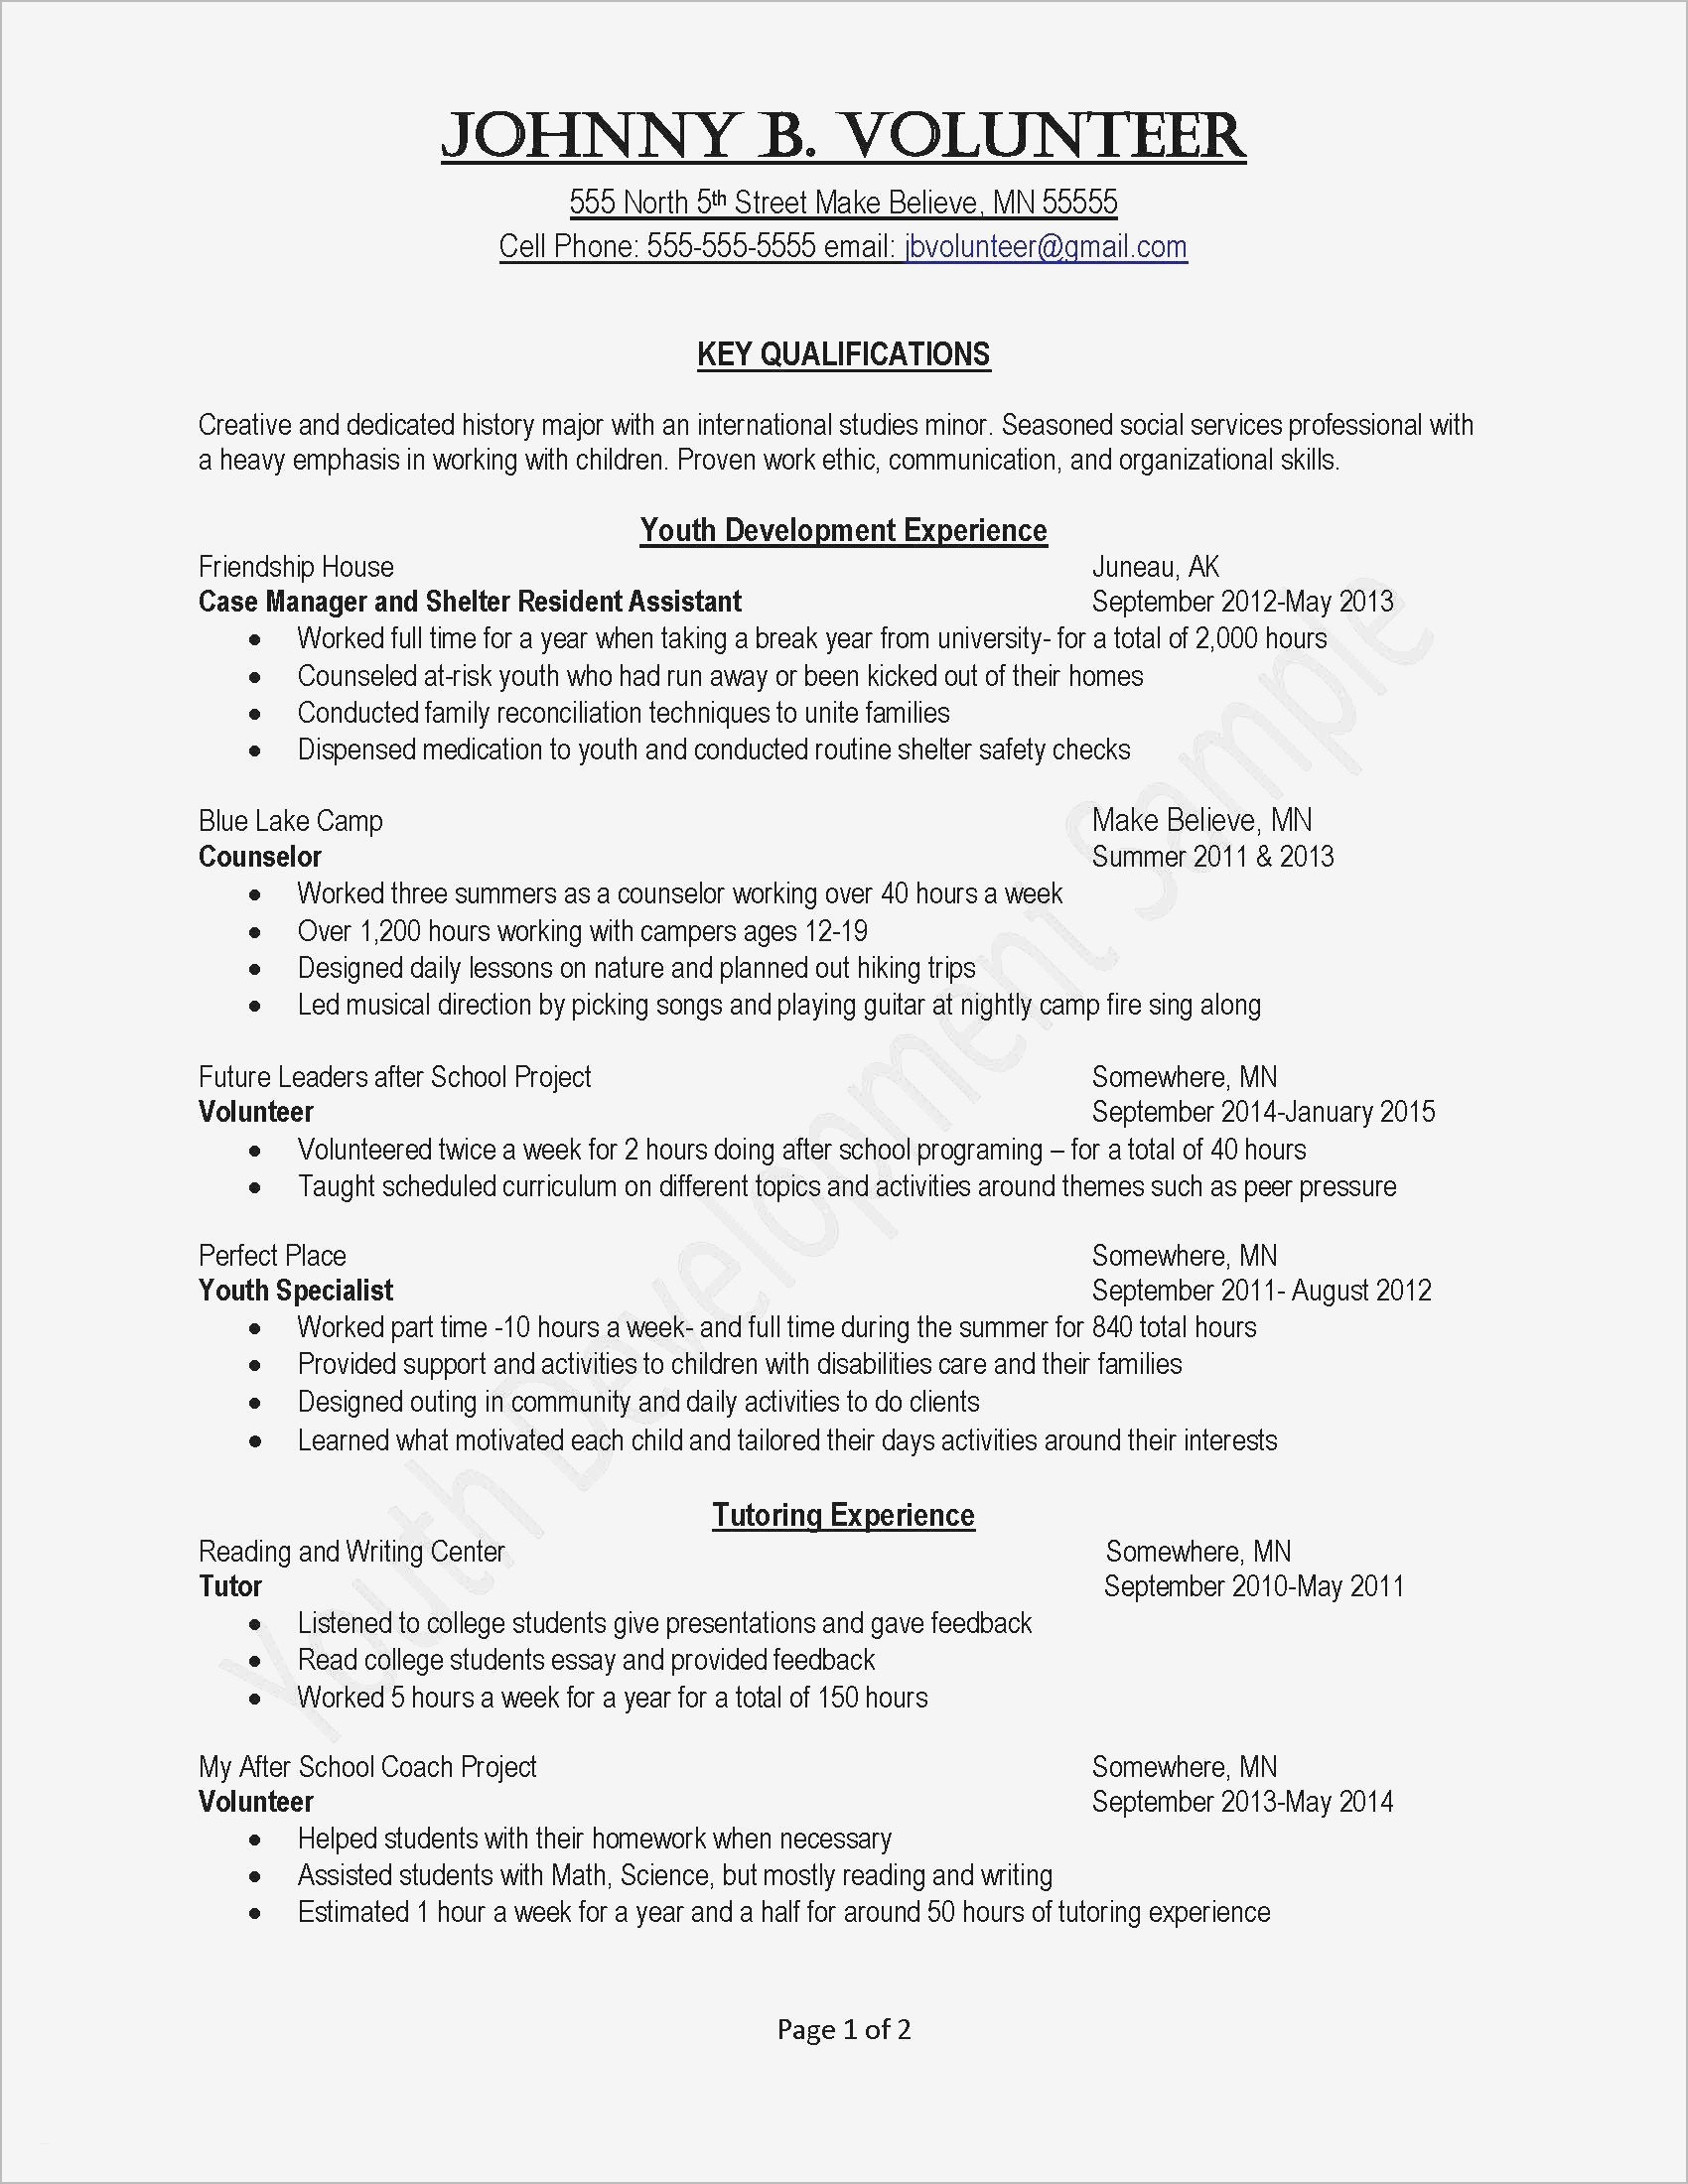 Free foreclosure Letter Template - Create Cover Letter for Resume Unique Job Fer Letter Template Us